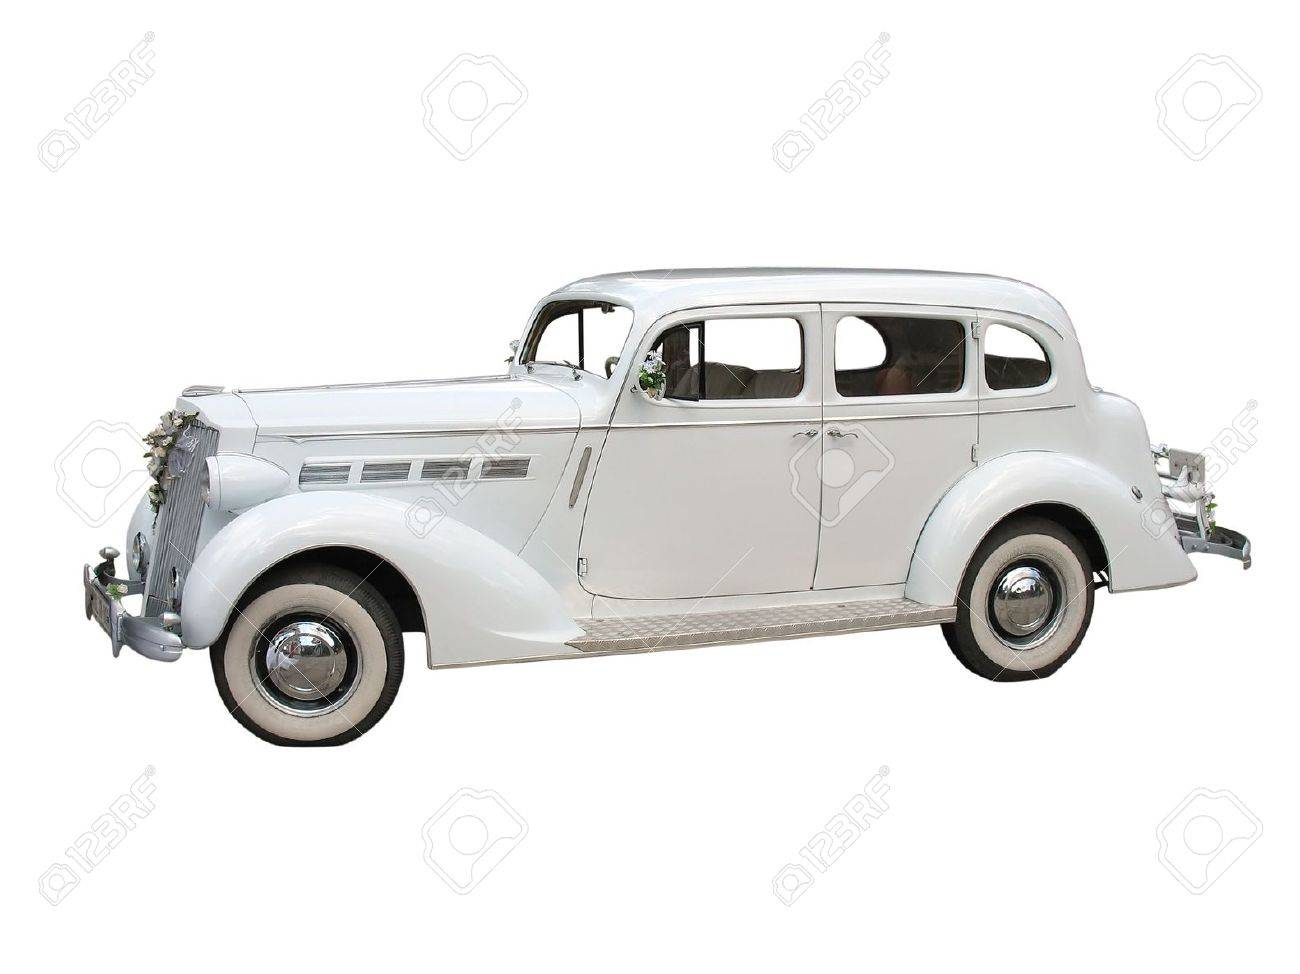 Retro Vintage White Dream Wedding Car Isolated Over White